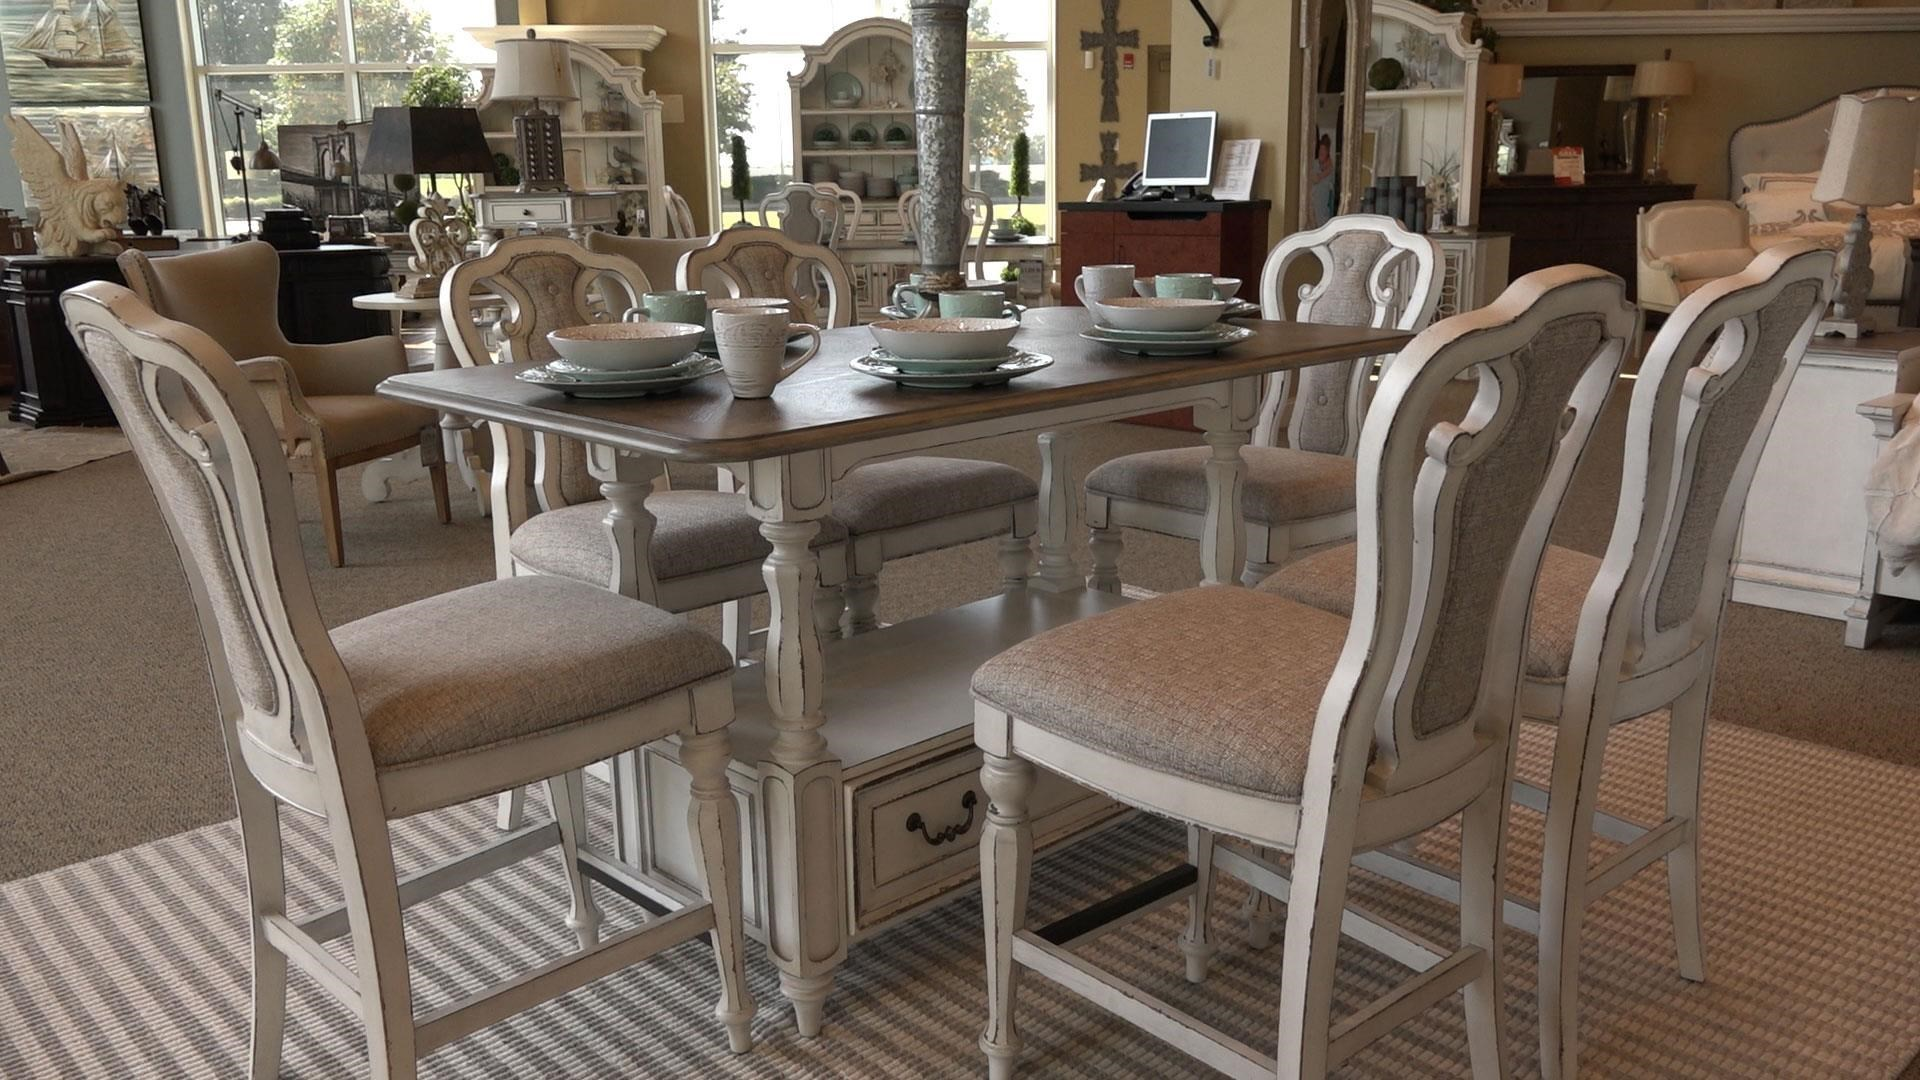 Liberty Furniture Magnolia Manor DiningGathering Table u0026 6 Counter Height Chairs  sc 1 st  Great American Home Store & Liberty Furniture Magnolia Manor Dining GRP-244-GATHERINGTBL-6 ...